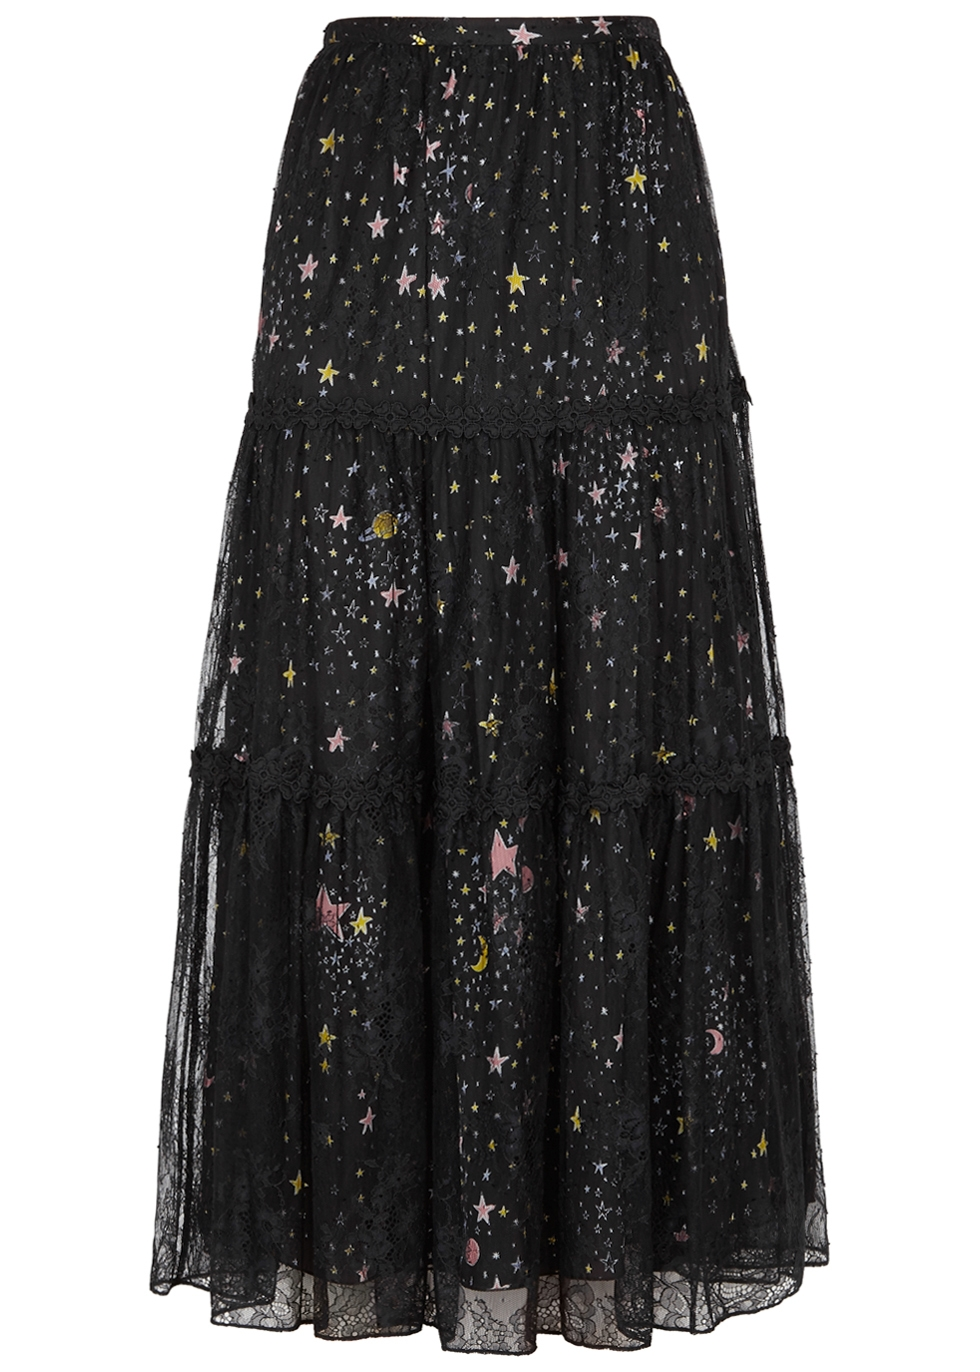 BOUTIQUE MOSCHINO PRINTED LACE AND SATIN MIDI SKIRT